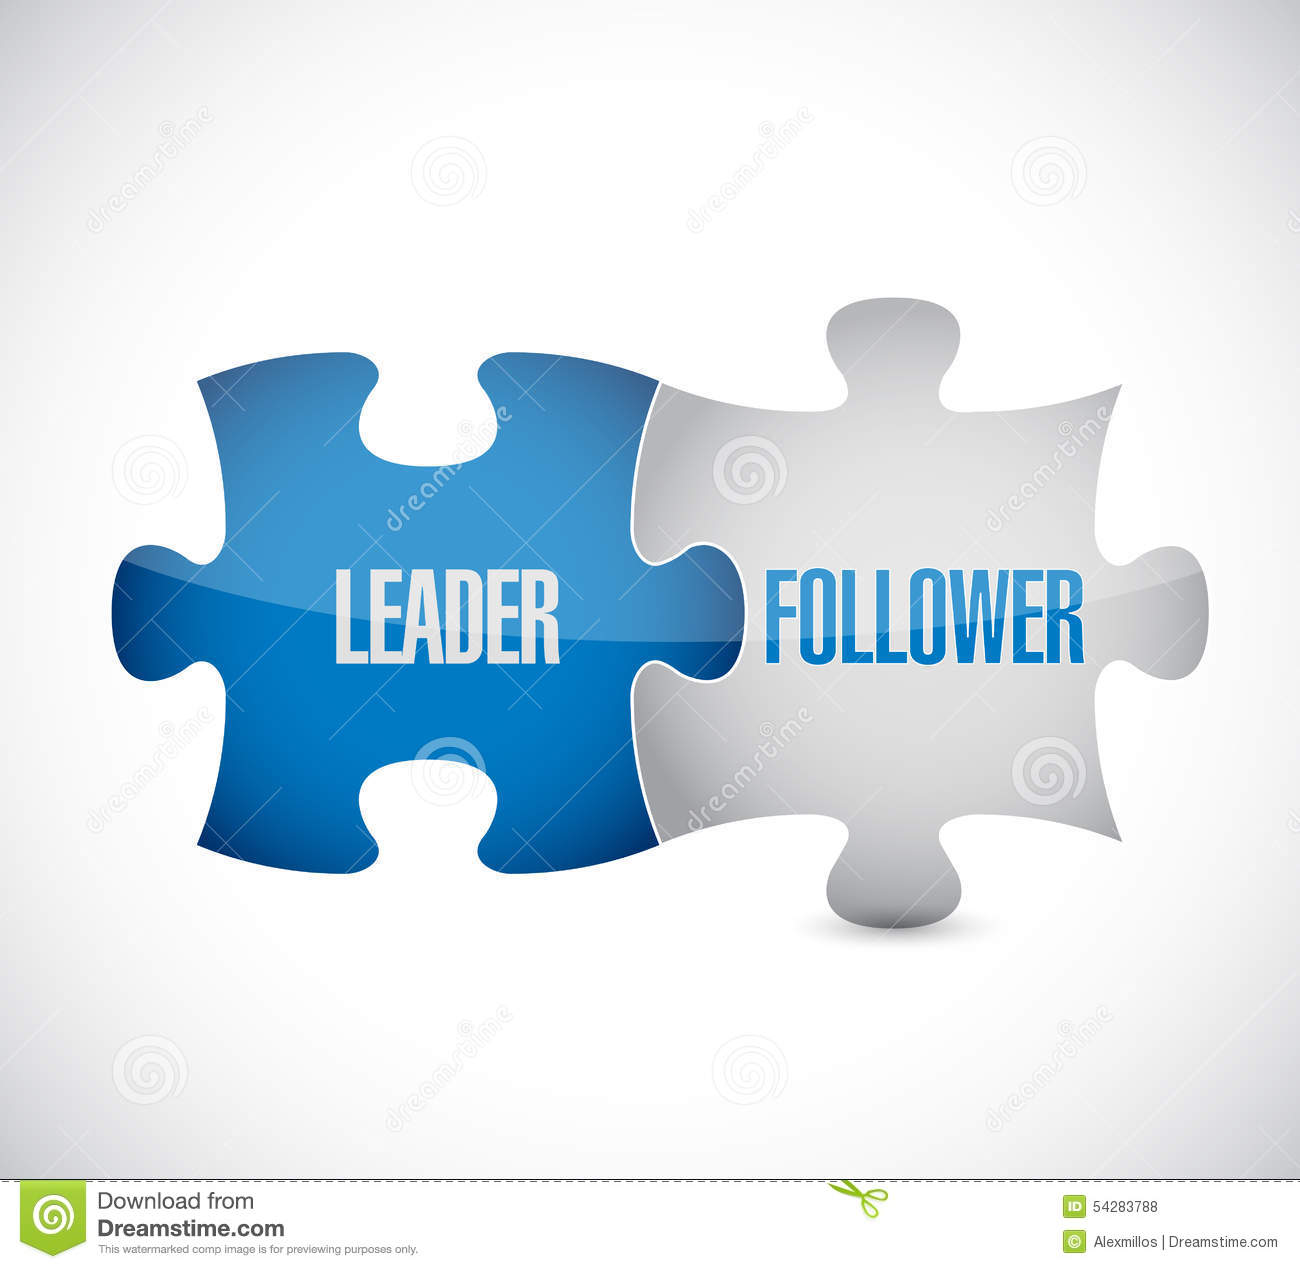 Leader and follower puzzle pieces sign illustration design over white.